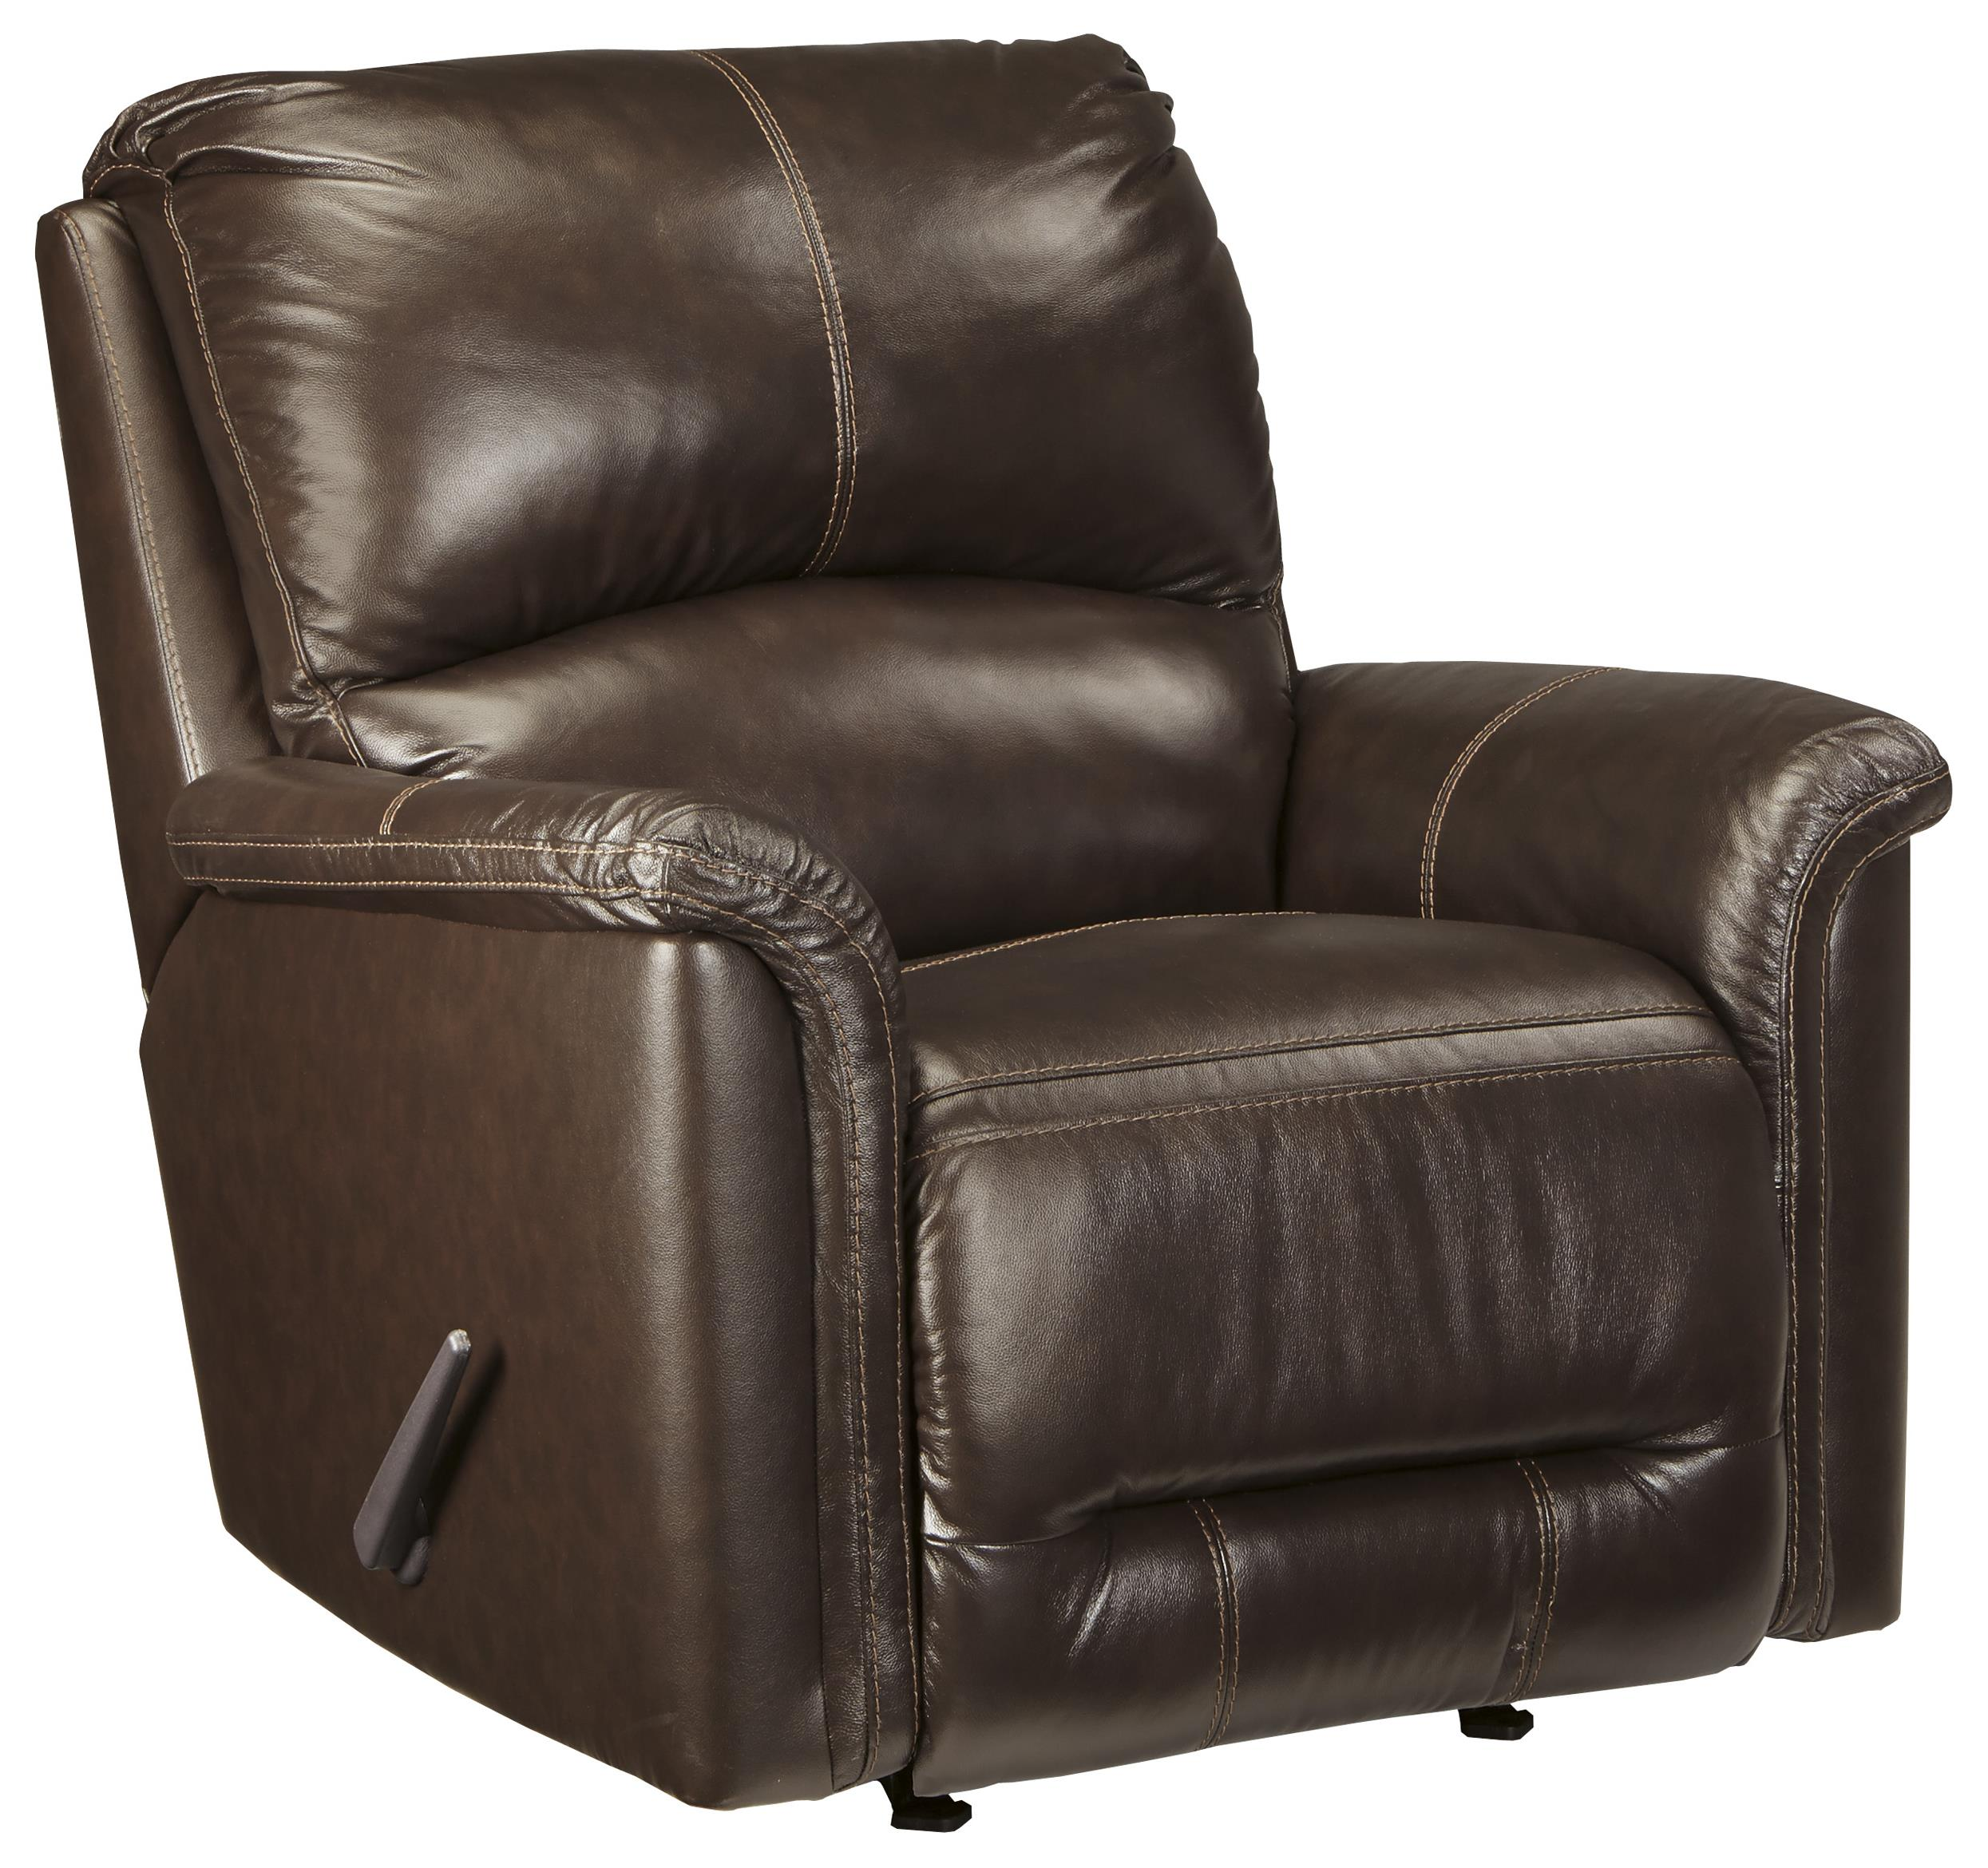 Signature Design by Ashley Lacotter Rocker Recliner - Item Number: 8660025